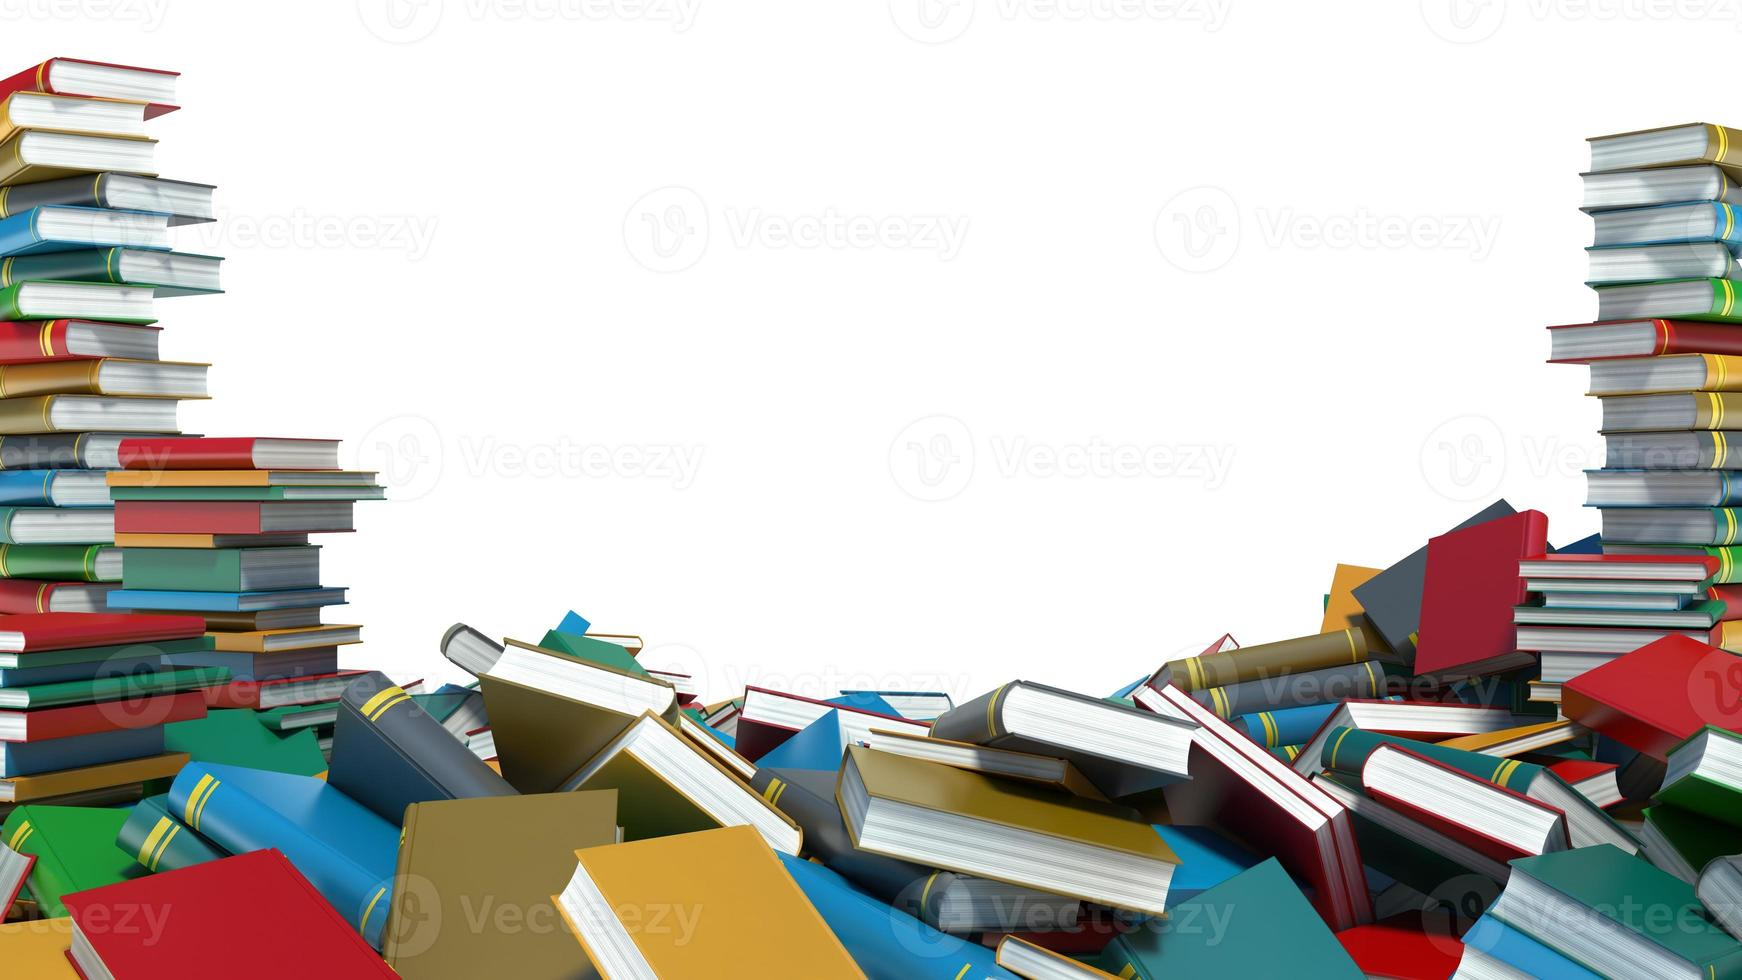 Pile of colorful books on white background photo